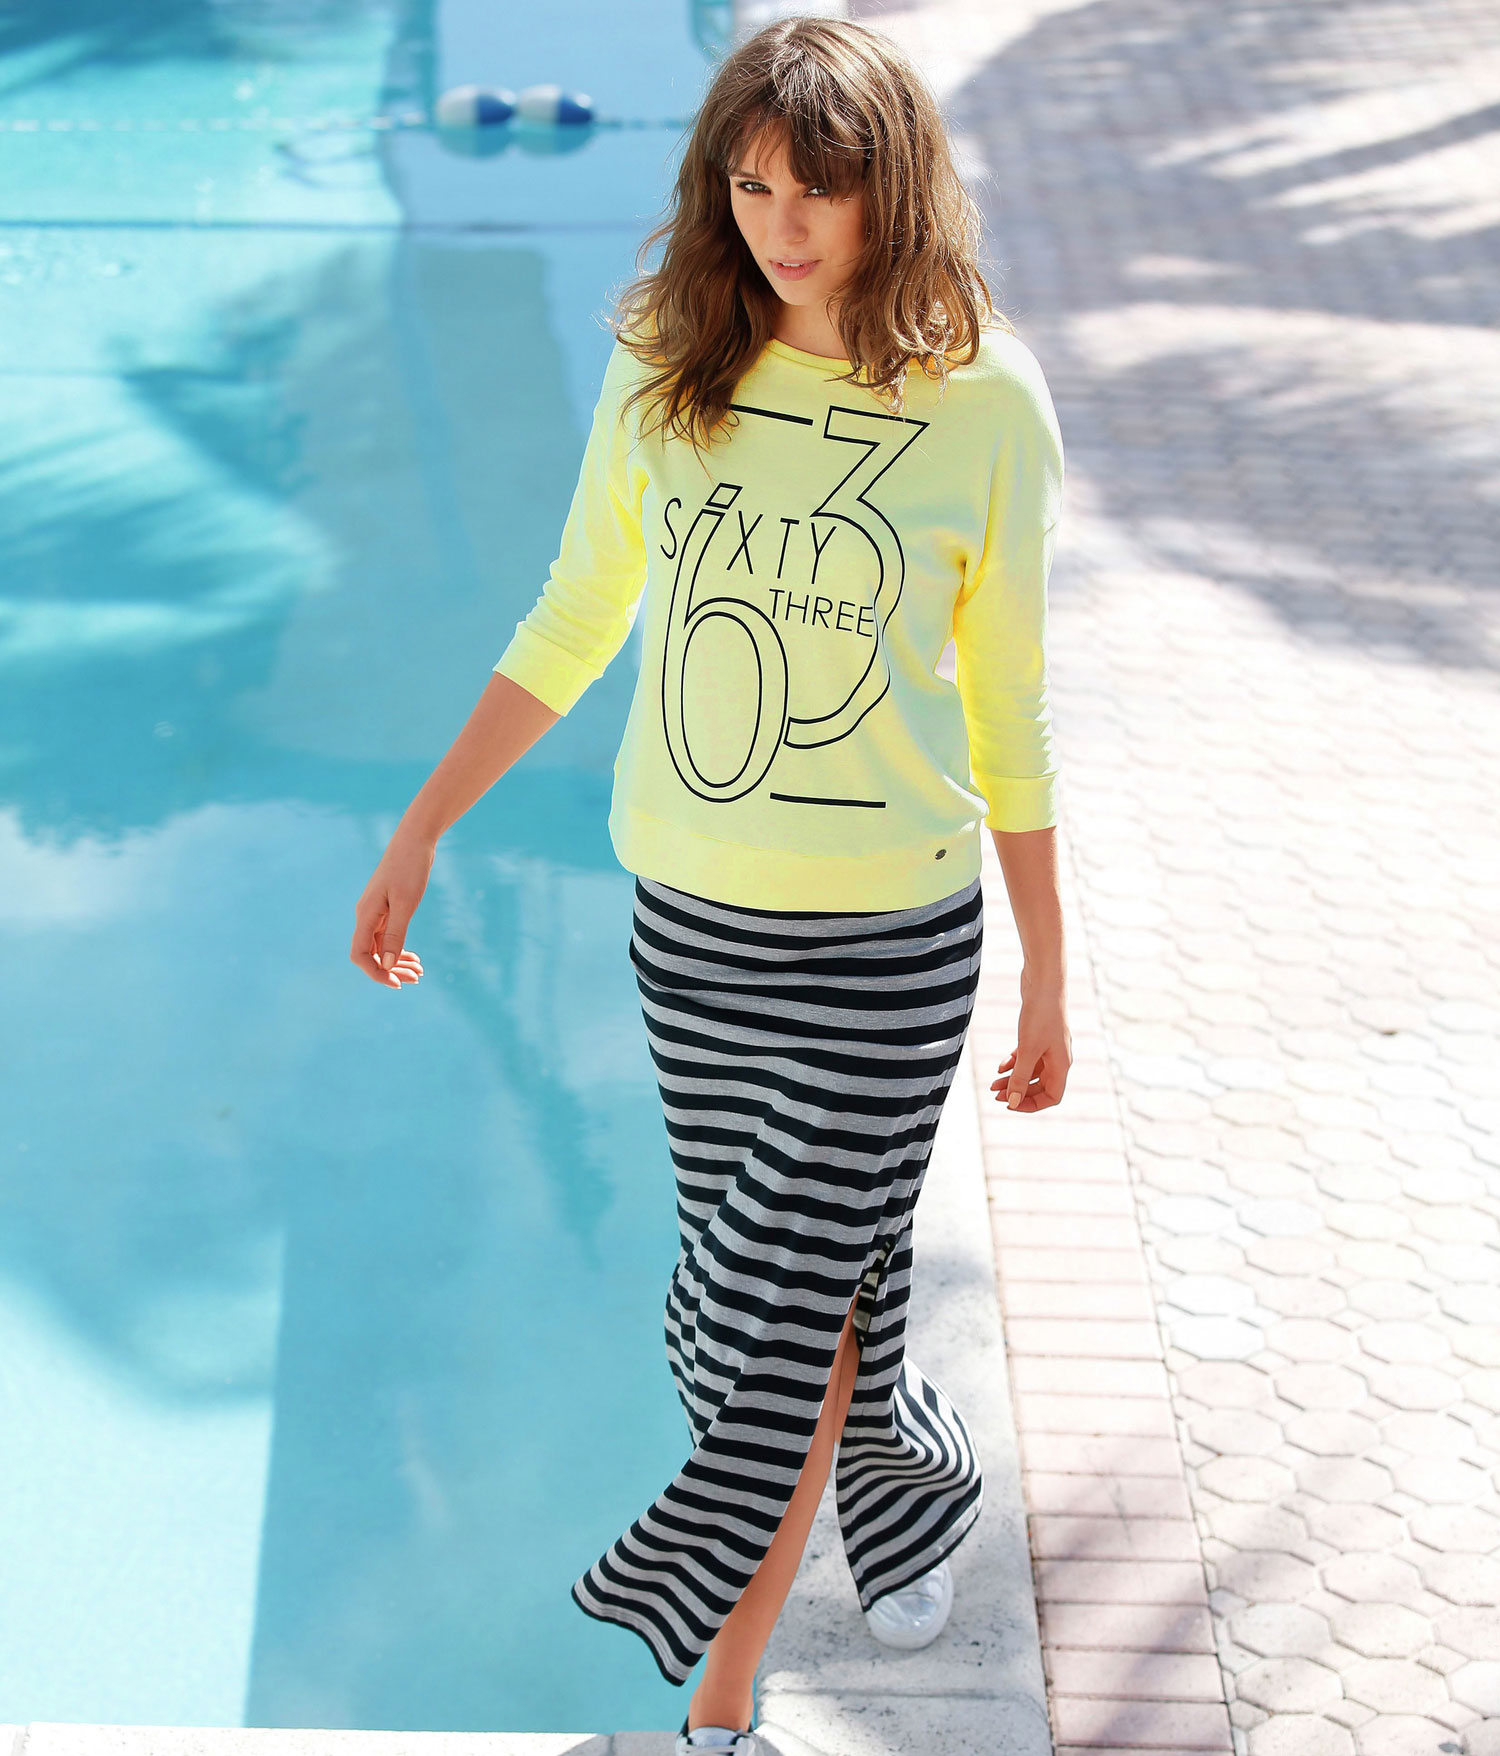 Summer style! Stripe Skirt and Yellow Printed Top